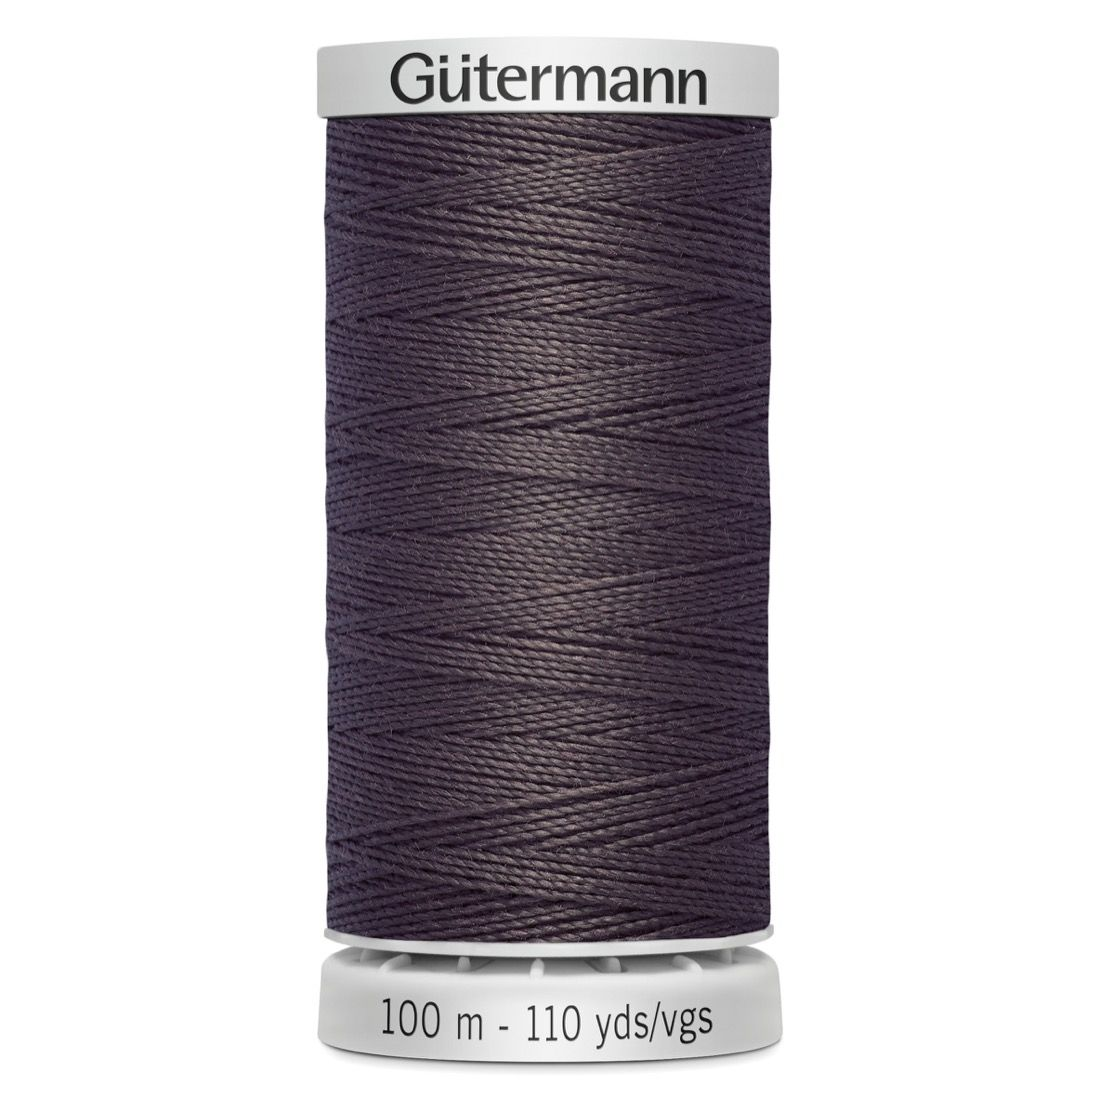 Gutermann Extra Strong Upholstery Thread - 100m - 540